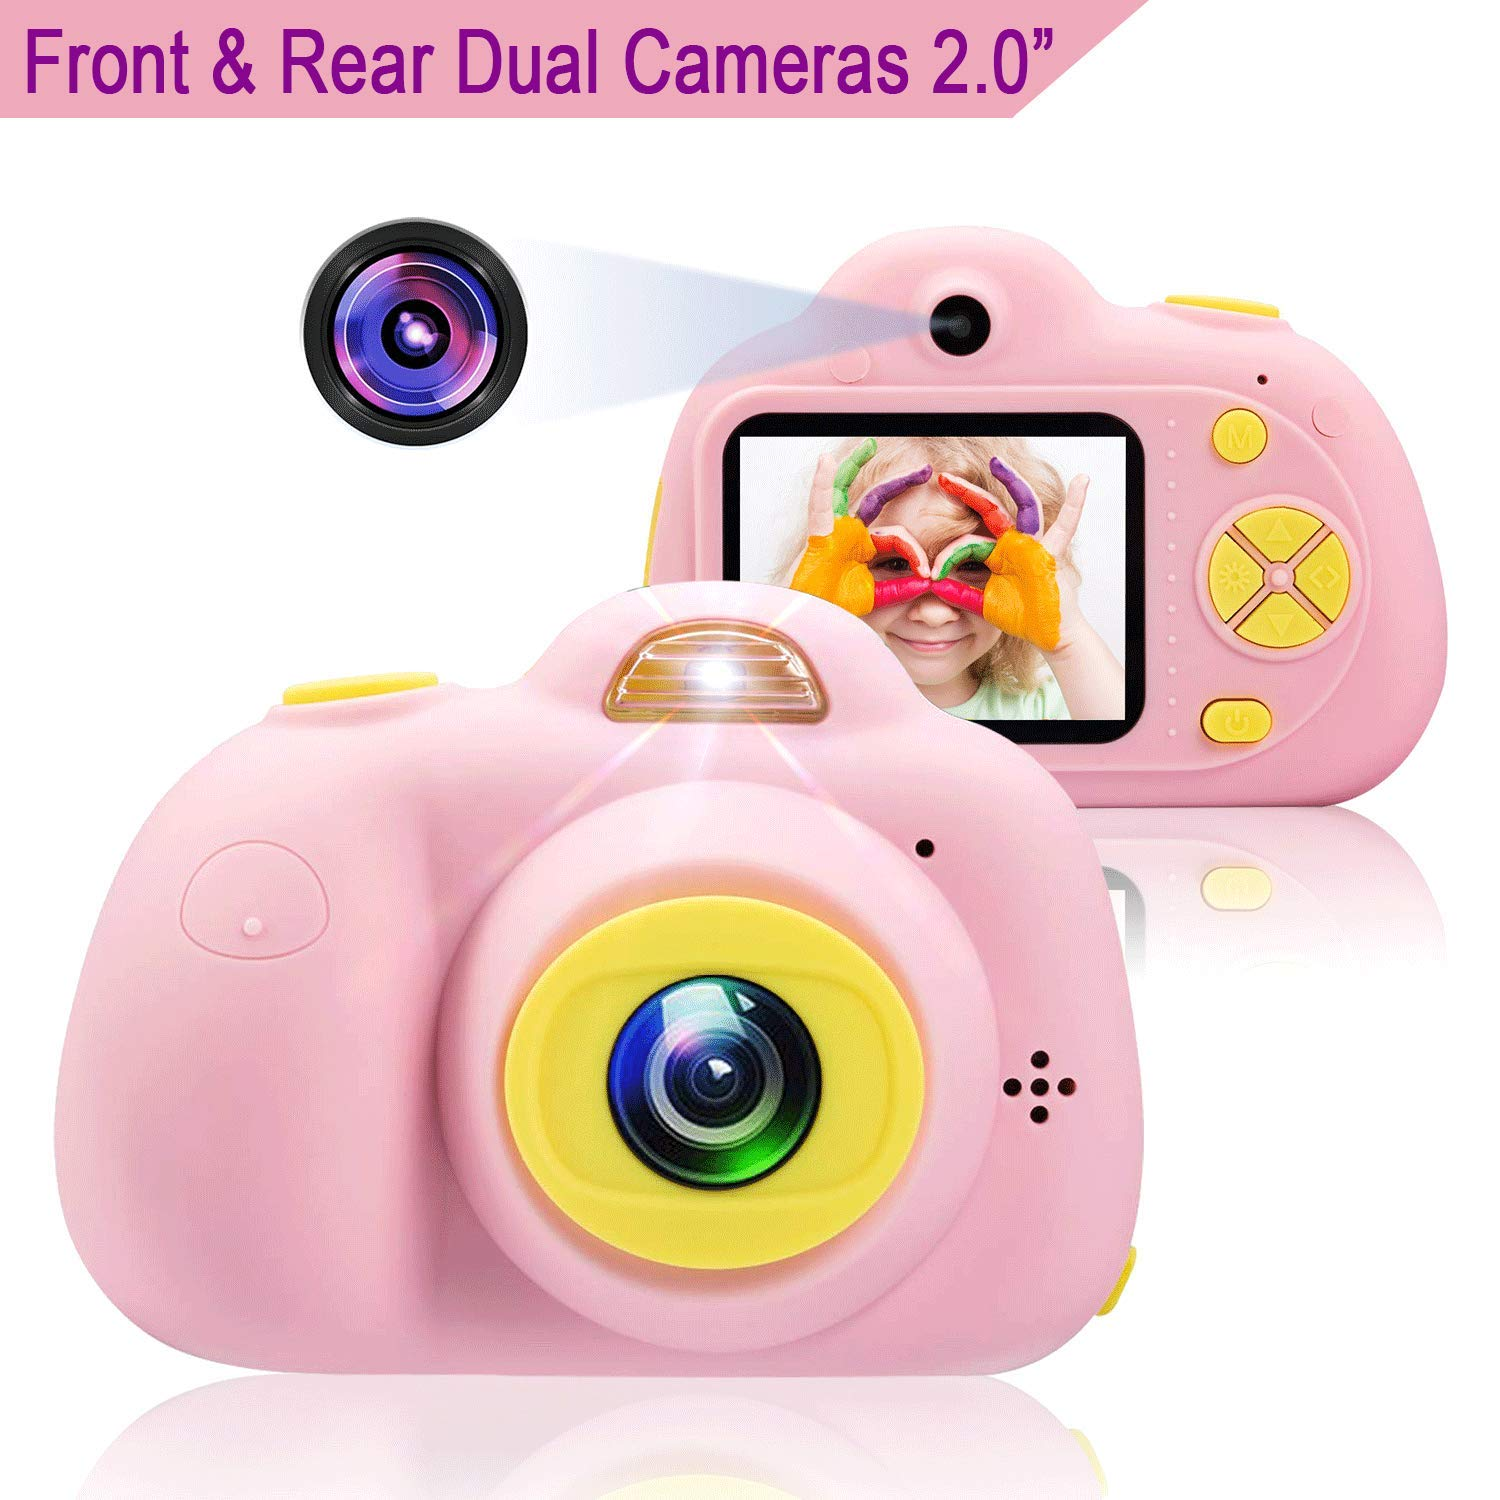 Anviker Kids Camera Gifts for 4-10 Year Old Girls, Shockproof Child Camcorder for Little Girls with Soft Silicone Shell for Outdoor Play, Pink (SD Card Not Includ) by Anviker (Image #1)